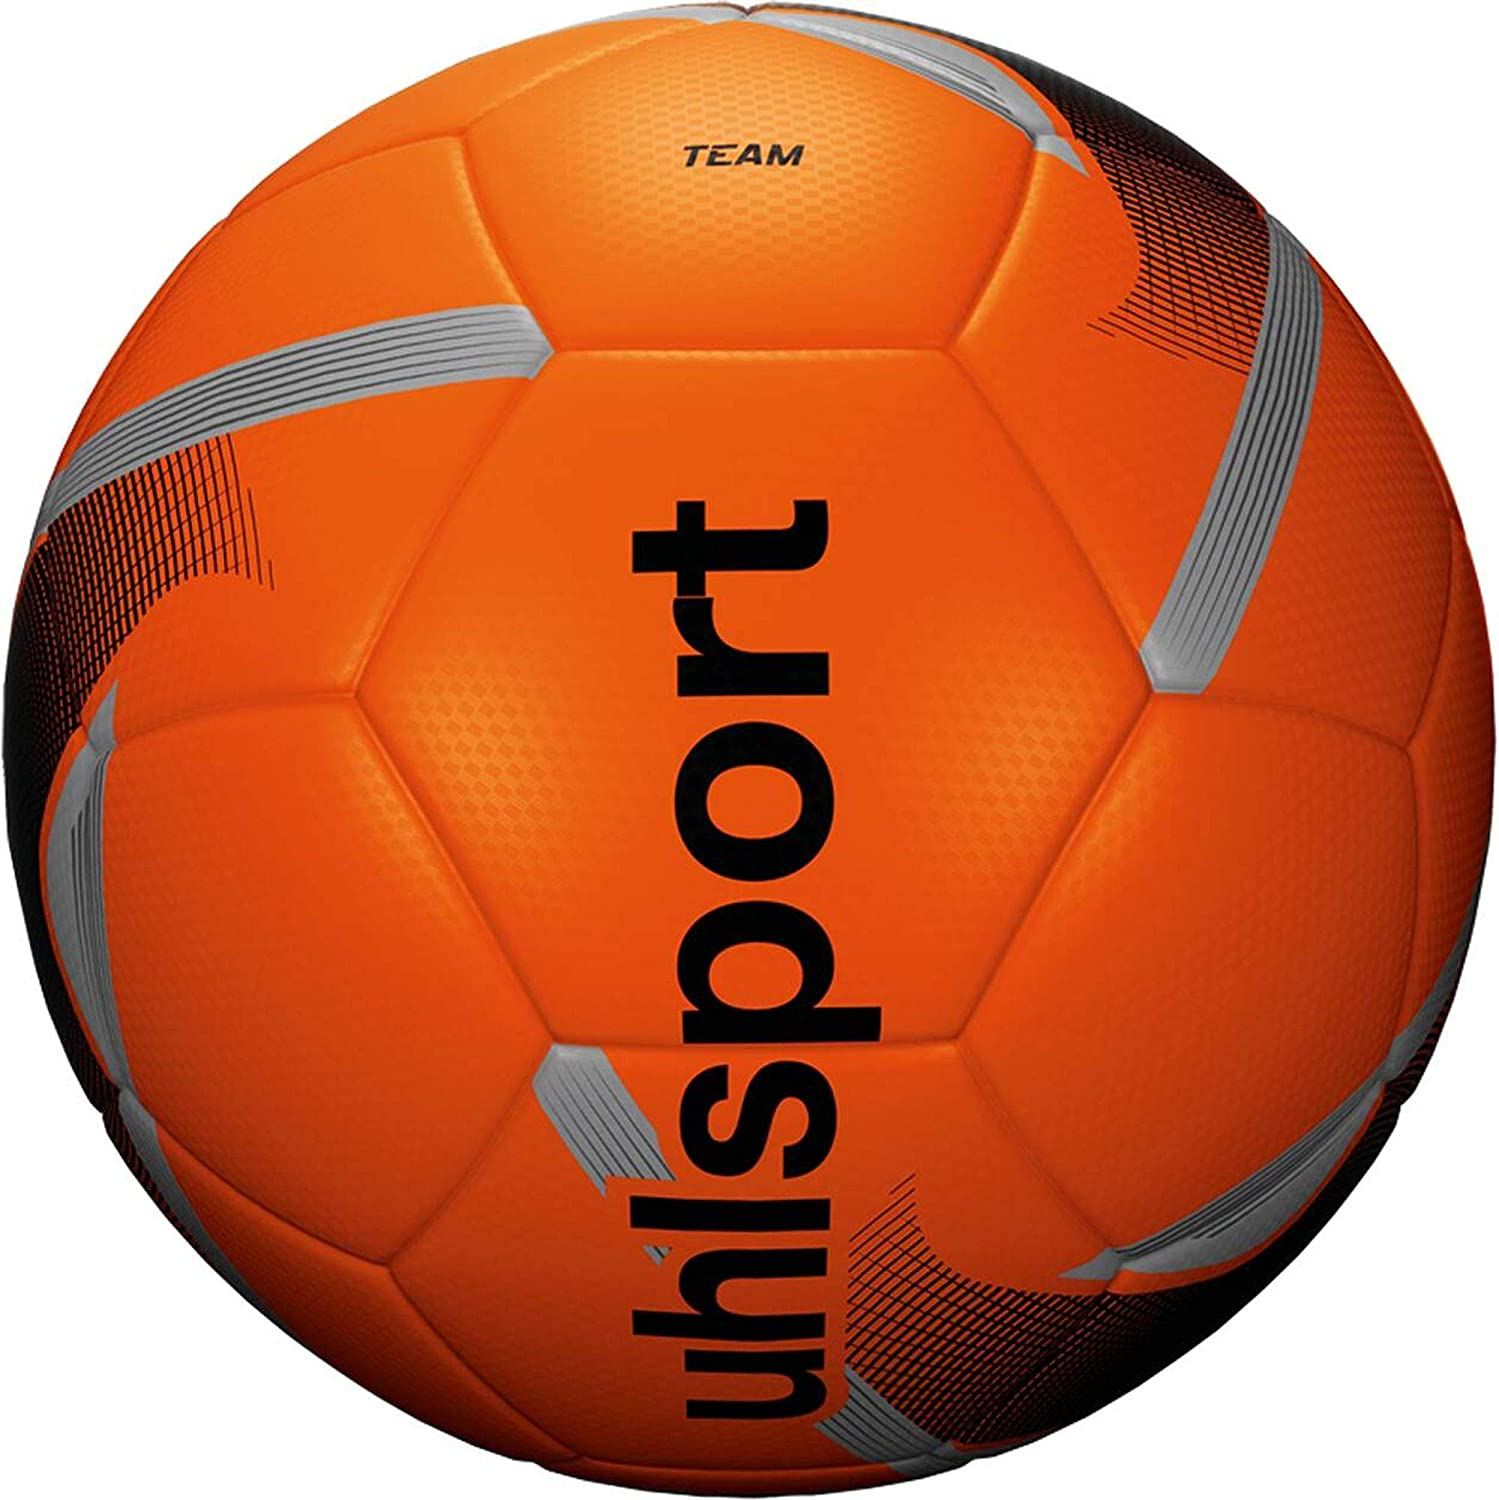 uhlsport Team Balón, Adultos Unisex, Naranja, 5: Amazon.es ...